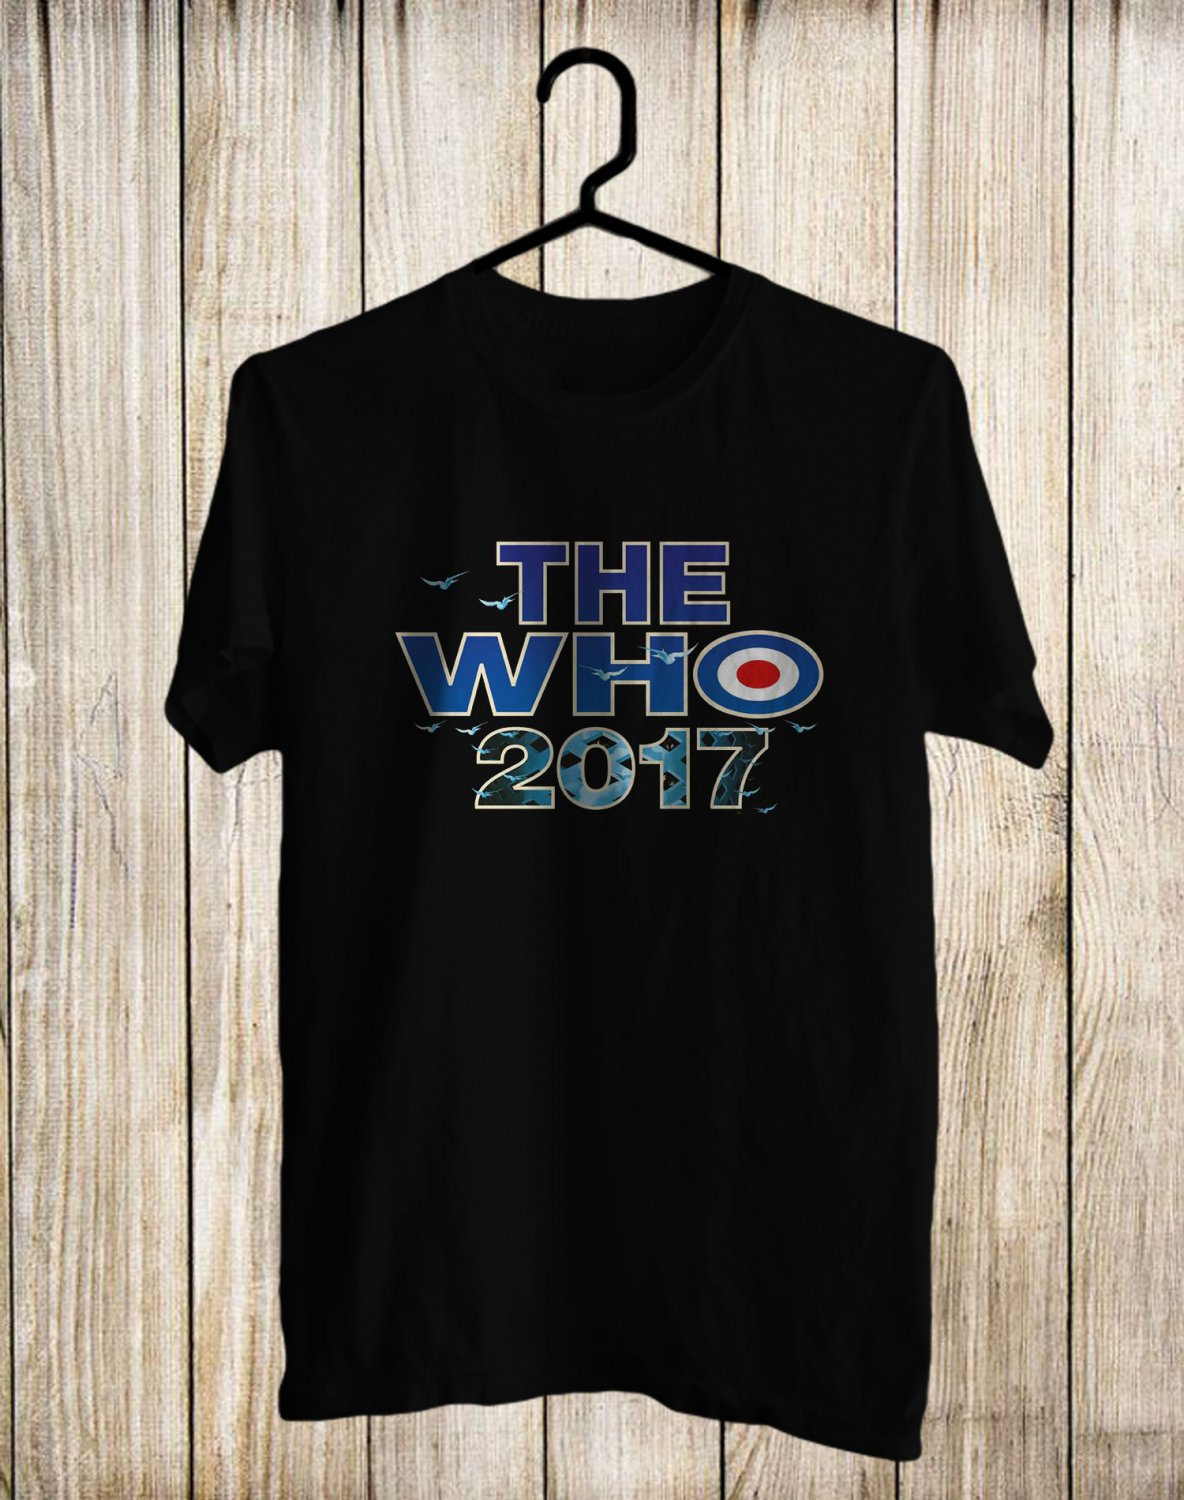 The Who Tour 2017 Black Tee's Front Side by Complexart z4